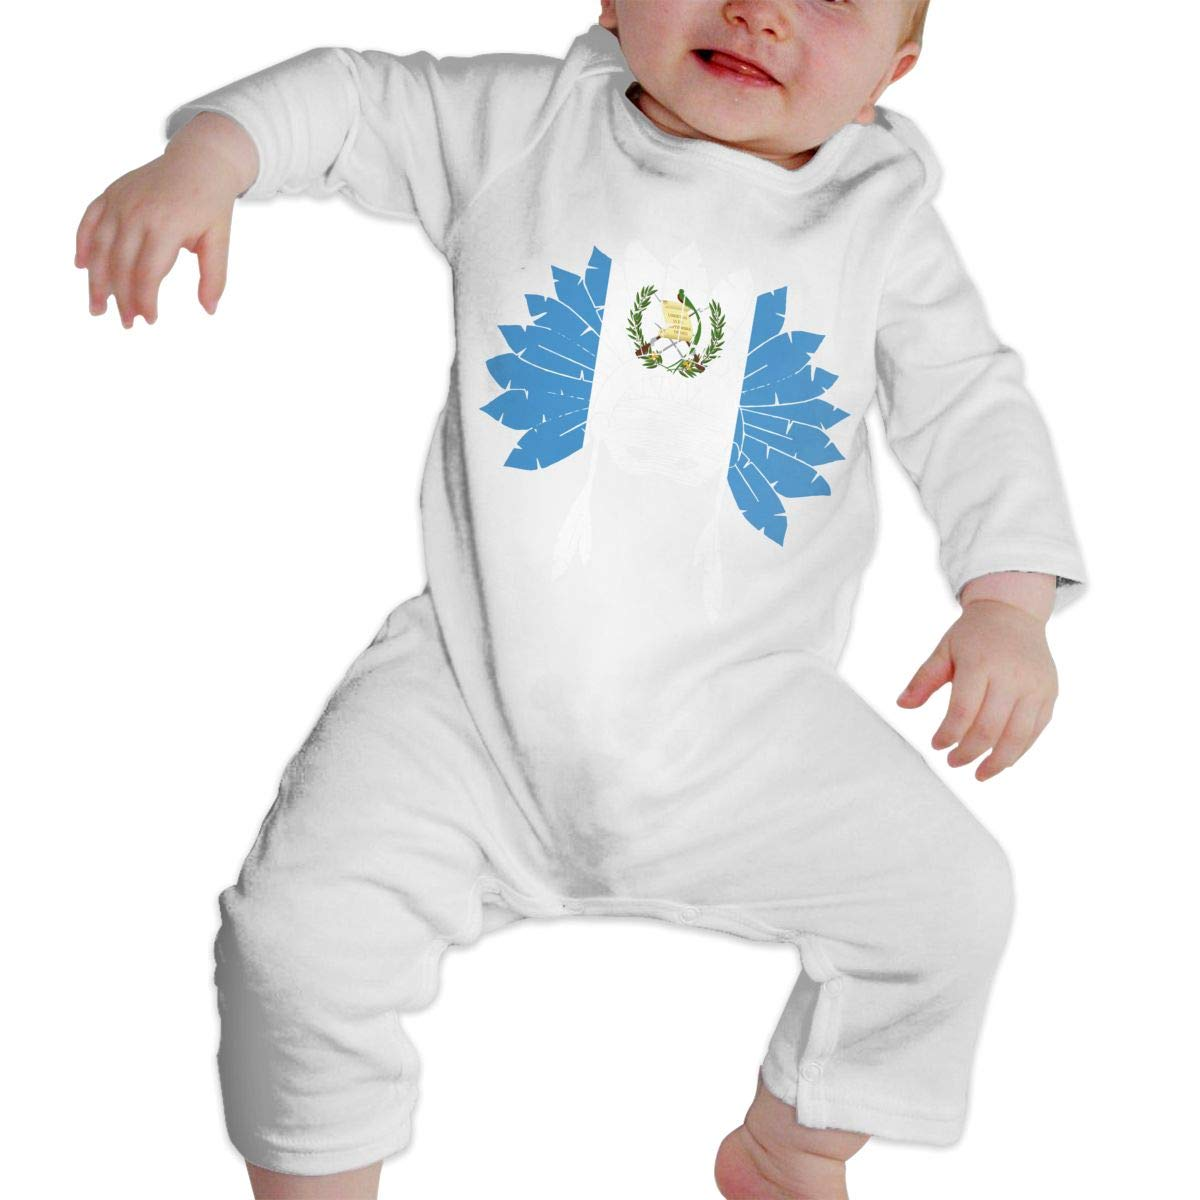 Baby Infant Toddler Cotton Long Sleeve Guatemala Native American Jumpsuit Romper One-Piece Romper Clothes